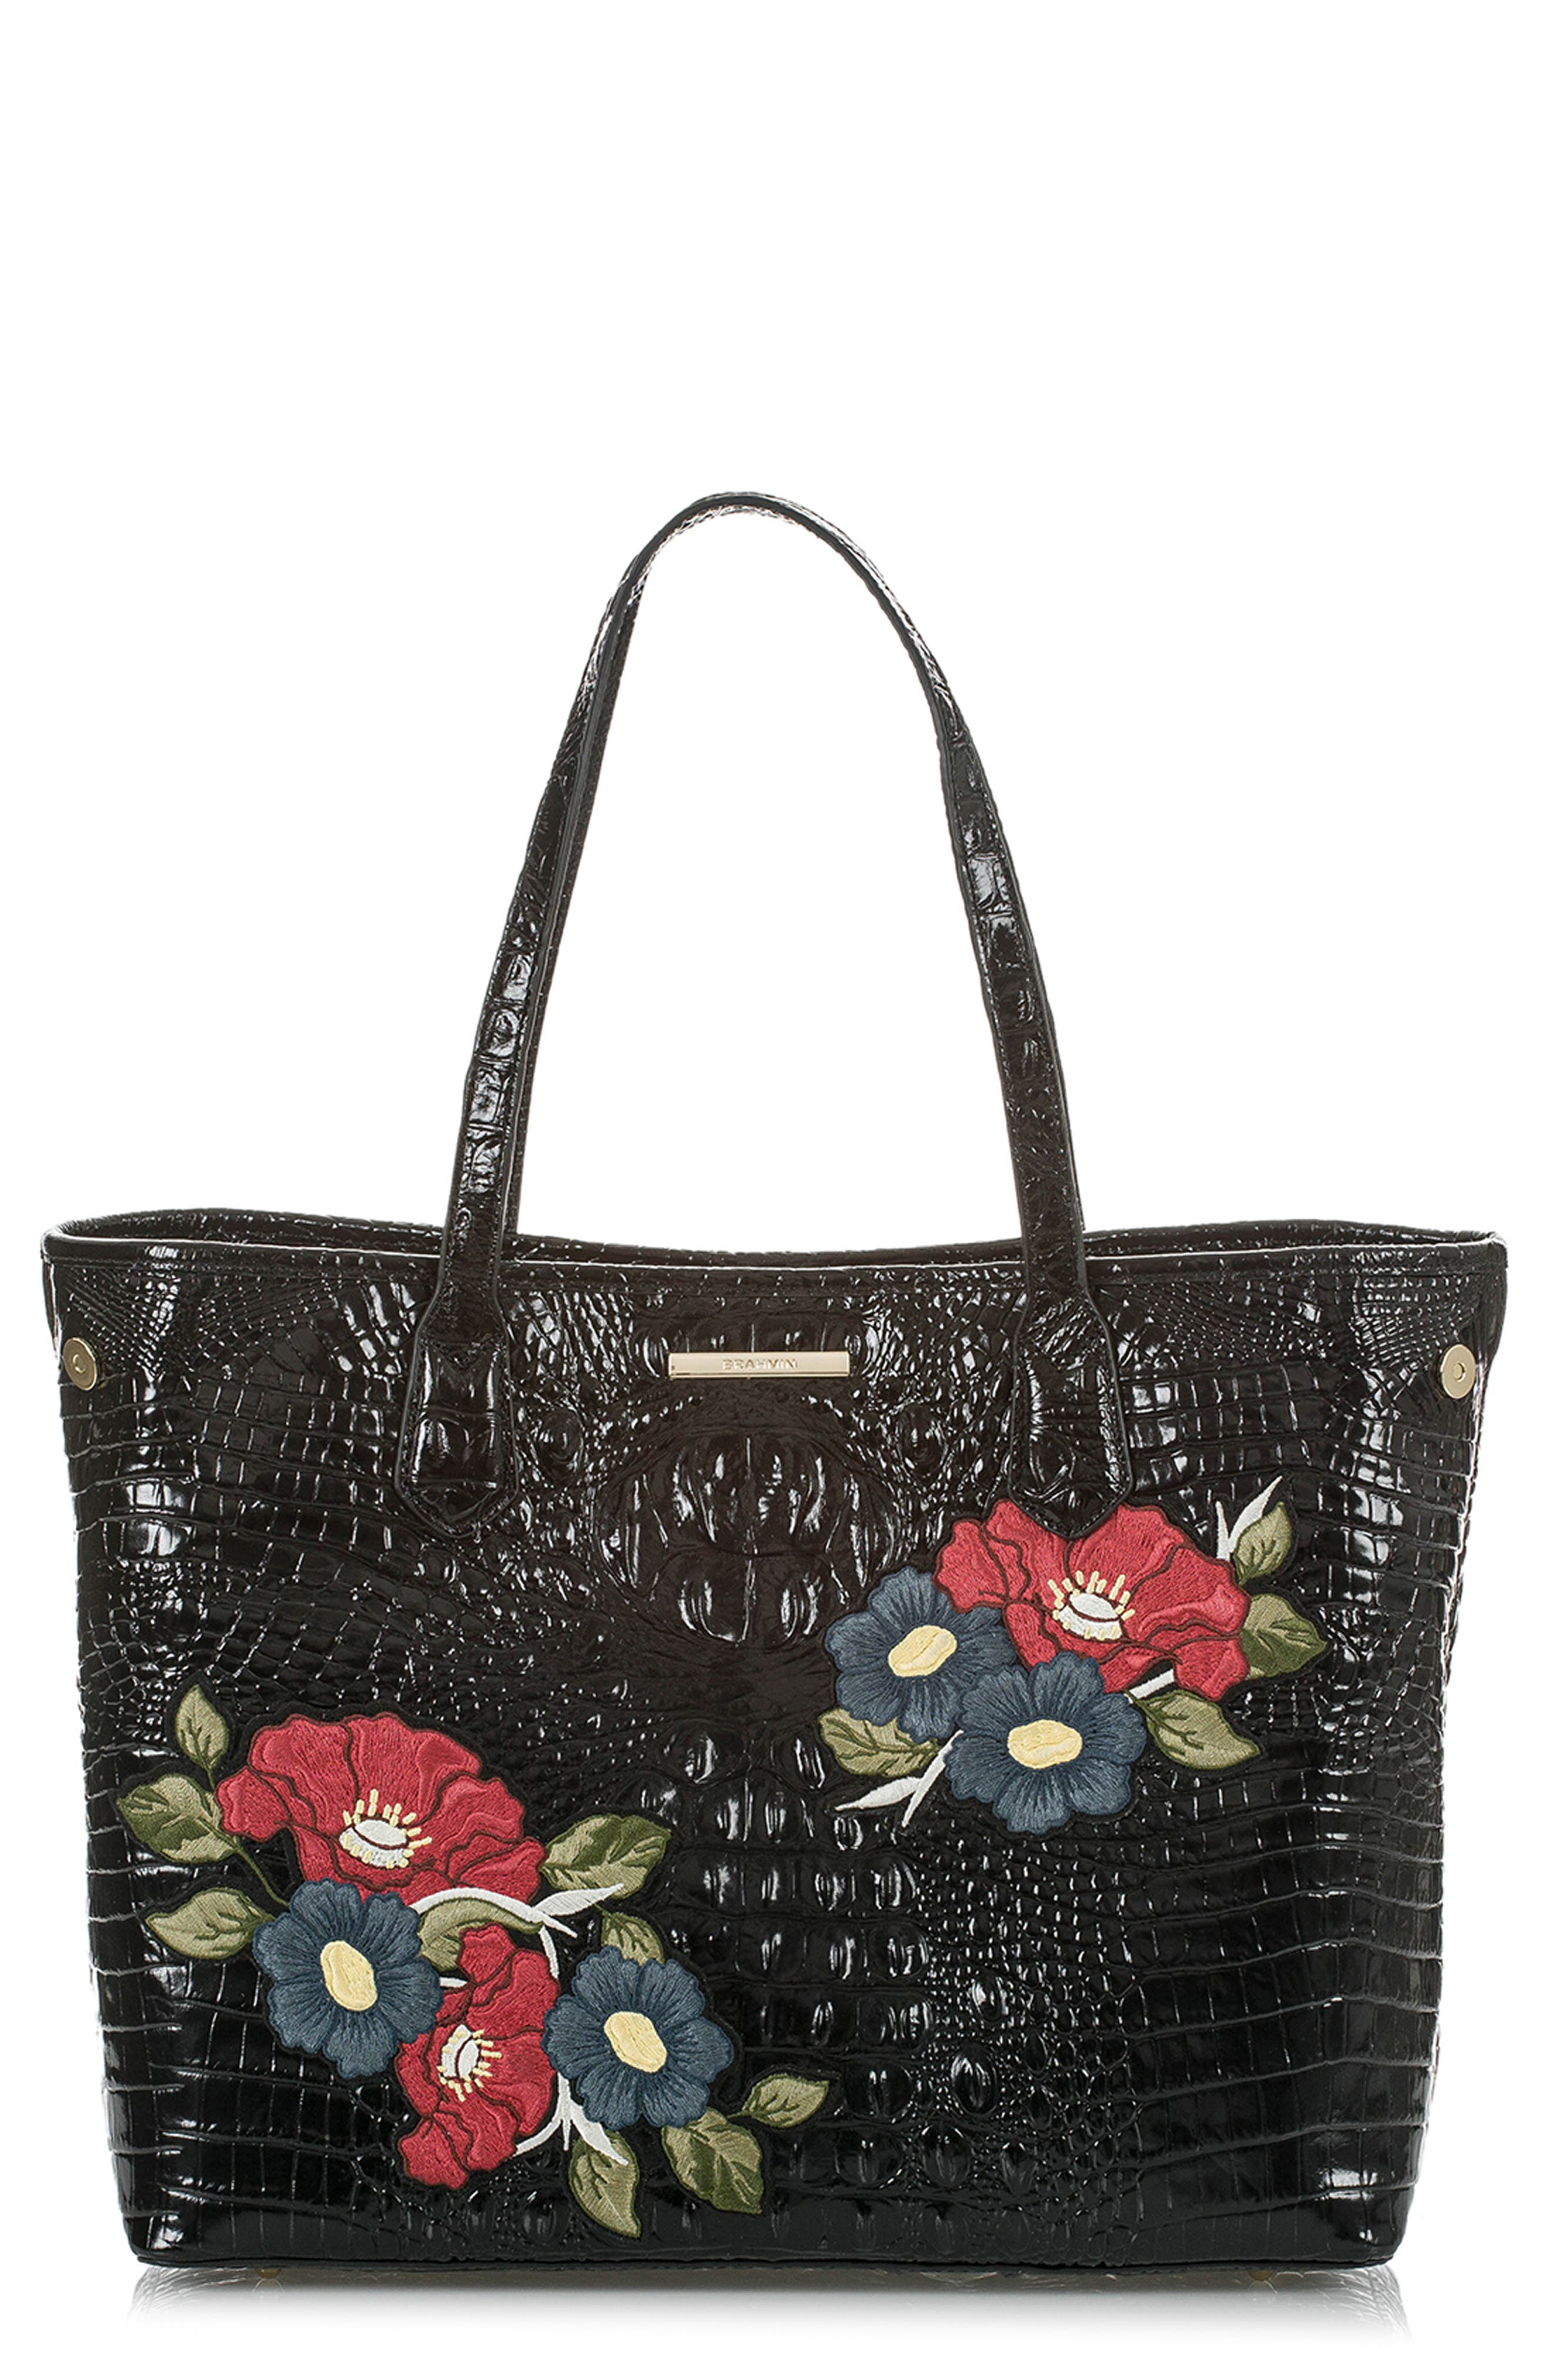 Medium Julian Embroidered Leather Tote,                             Main thumbnail 1, color,                             BLACK